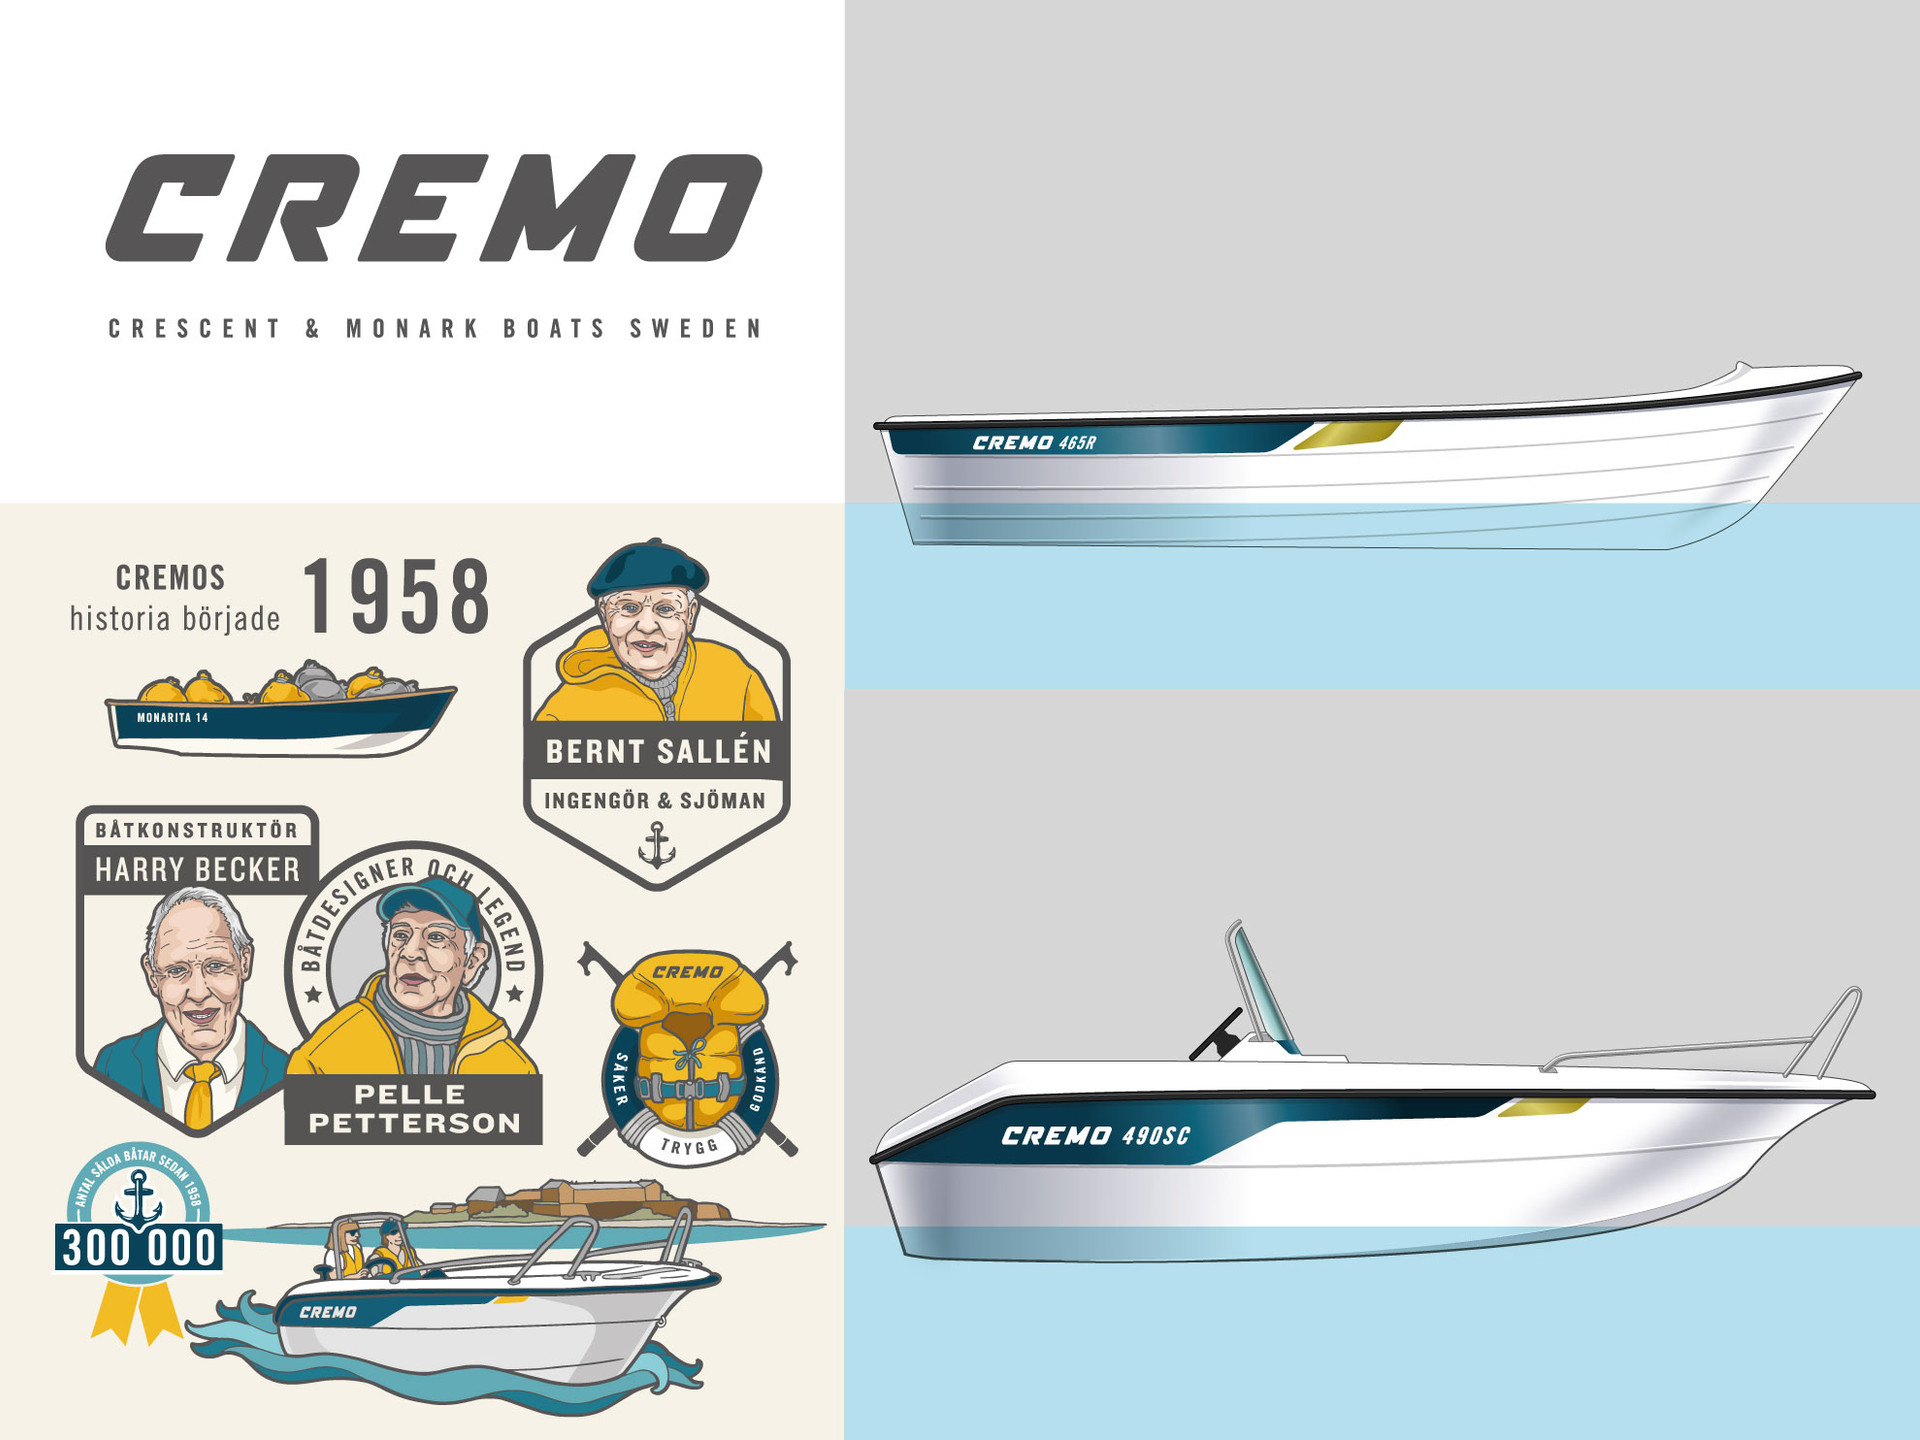 CREMO Boats - a new brand with heritage.